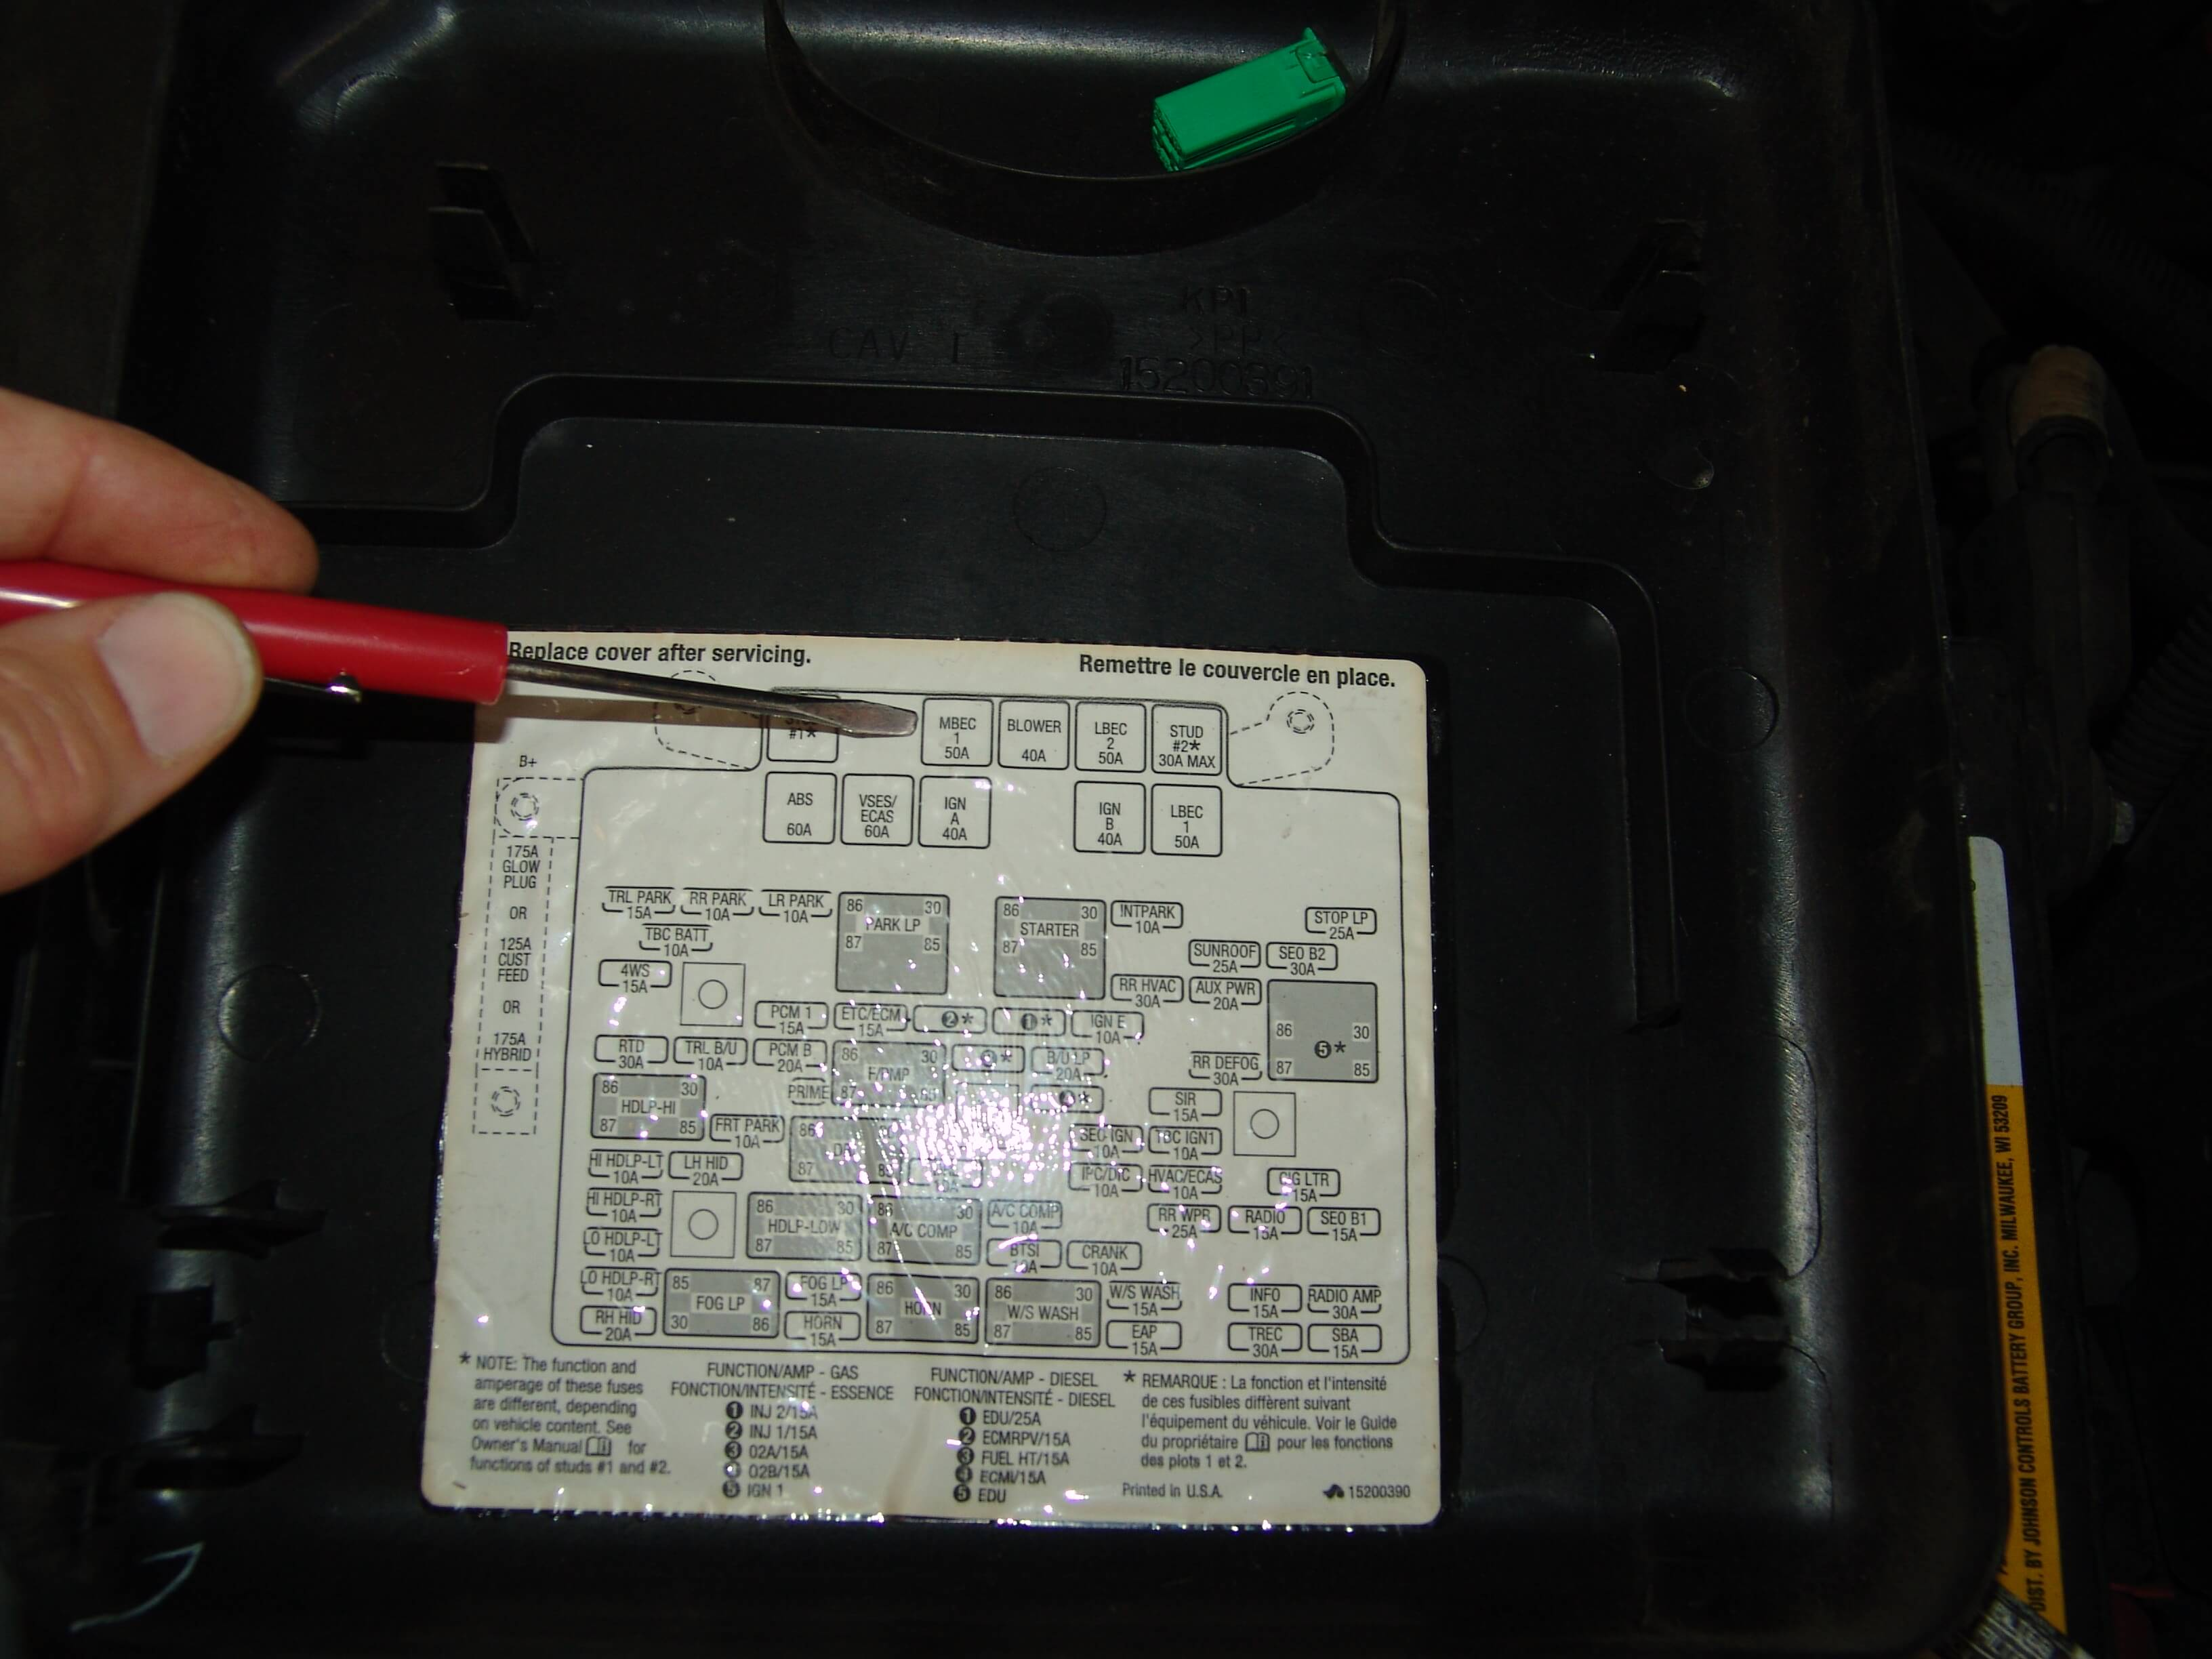 2013 Gmc Sierra Fuel Filter Location as well 02 Power Mirrors 97 Wiring Help 28371 together with Watch together with Case 995 Wiring Diagram additionally Watch. on wiring diagram for 2001 yukon